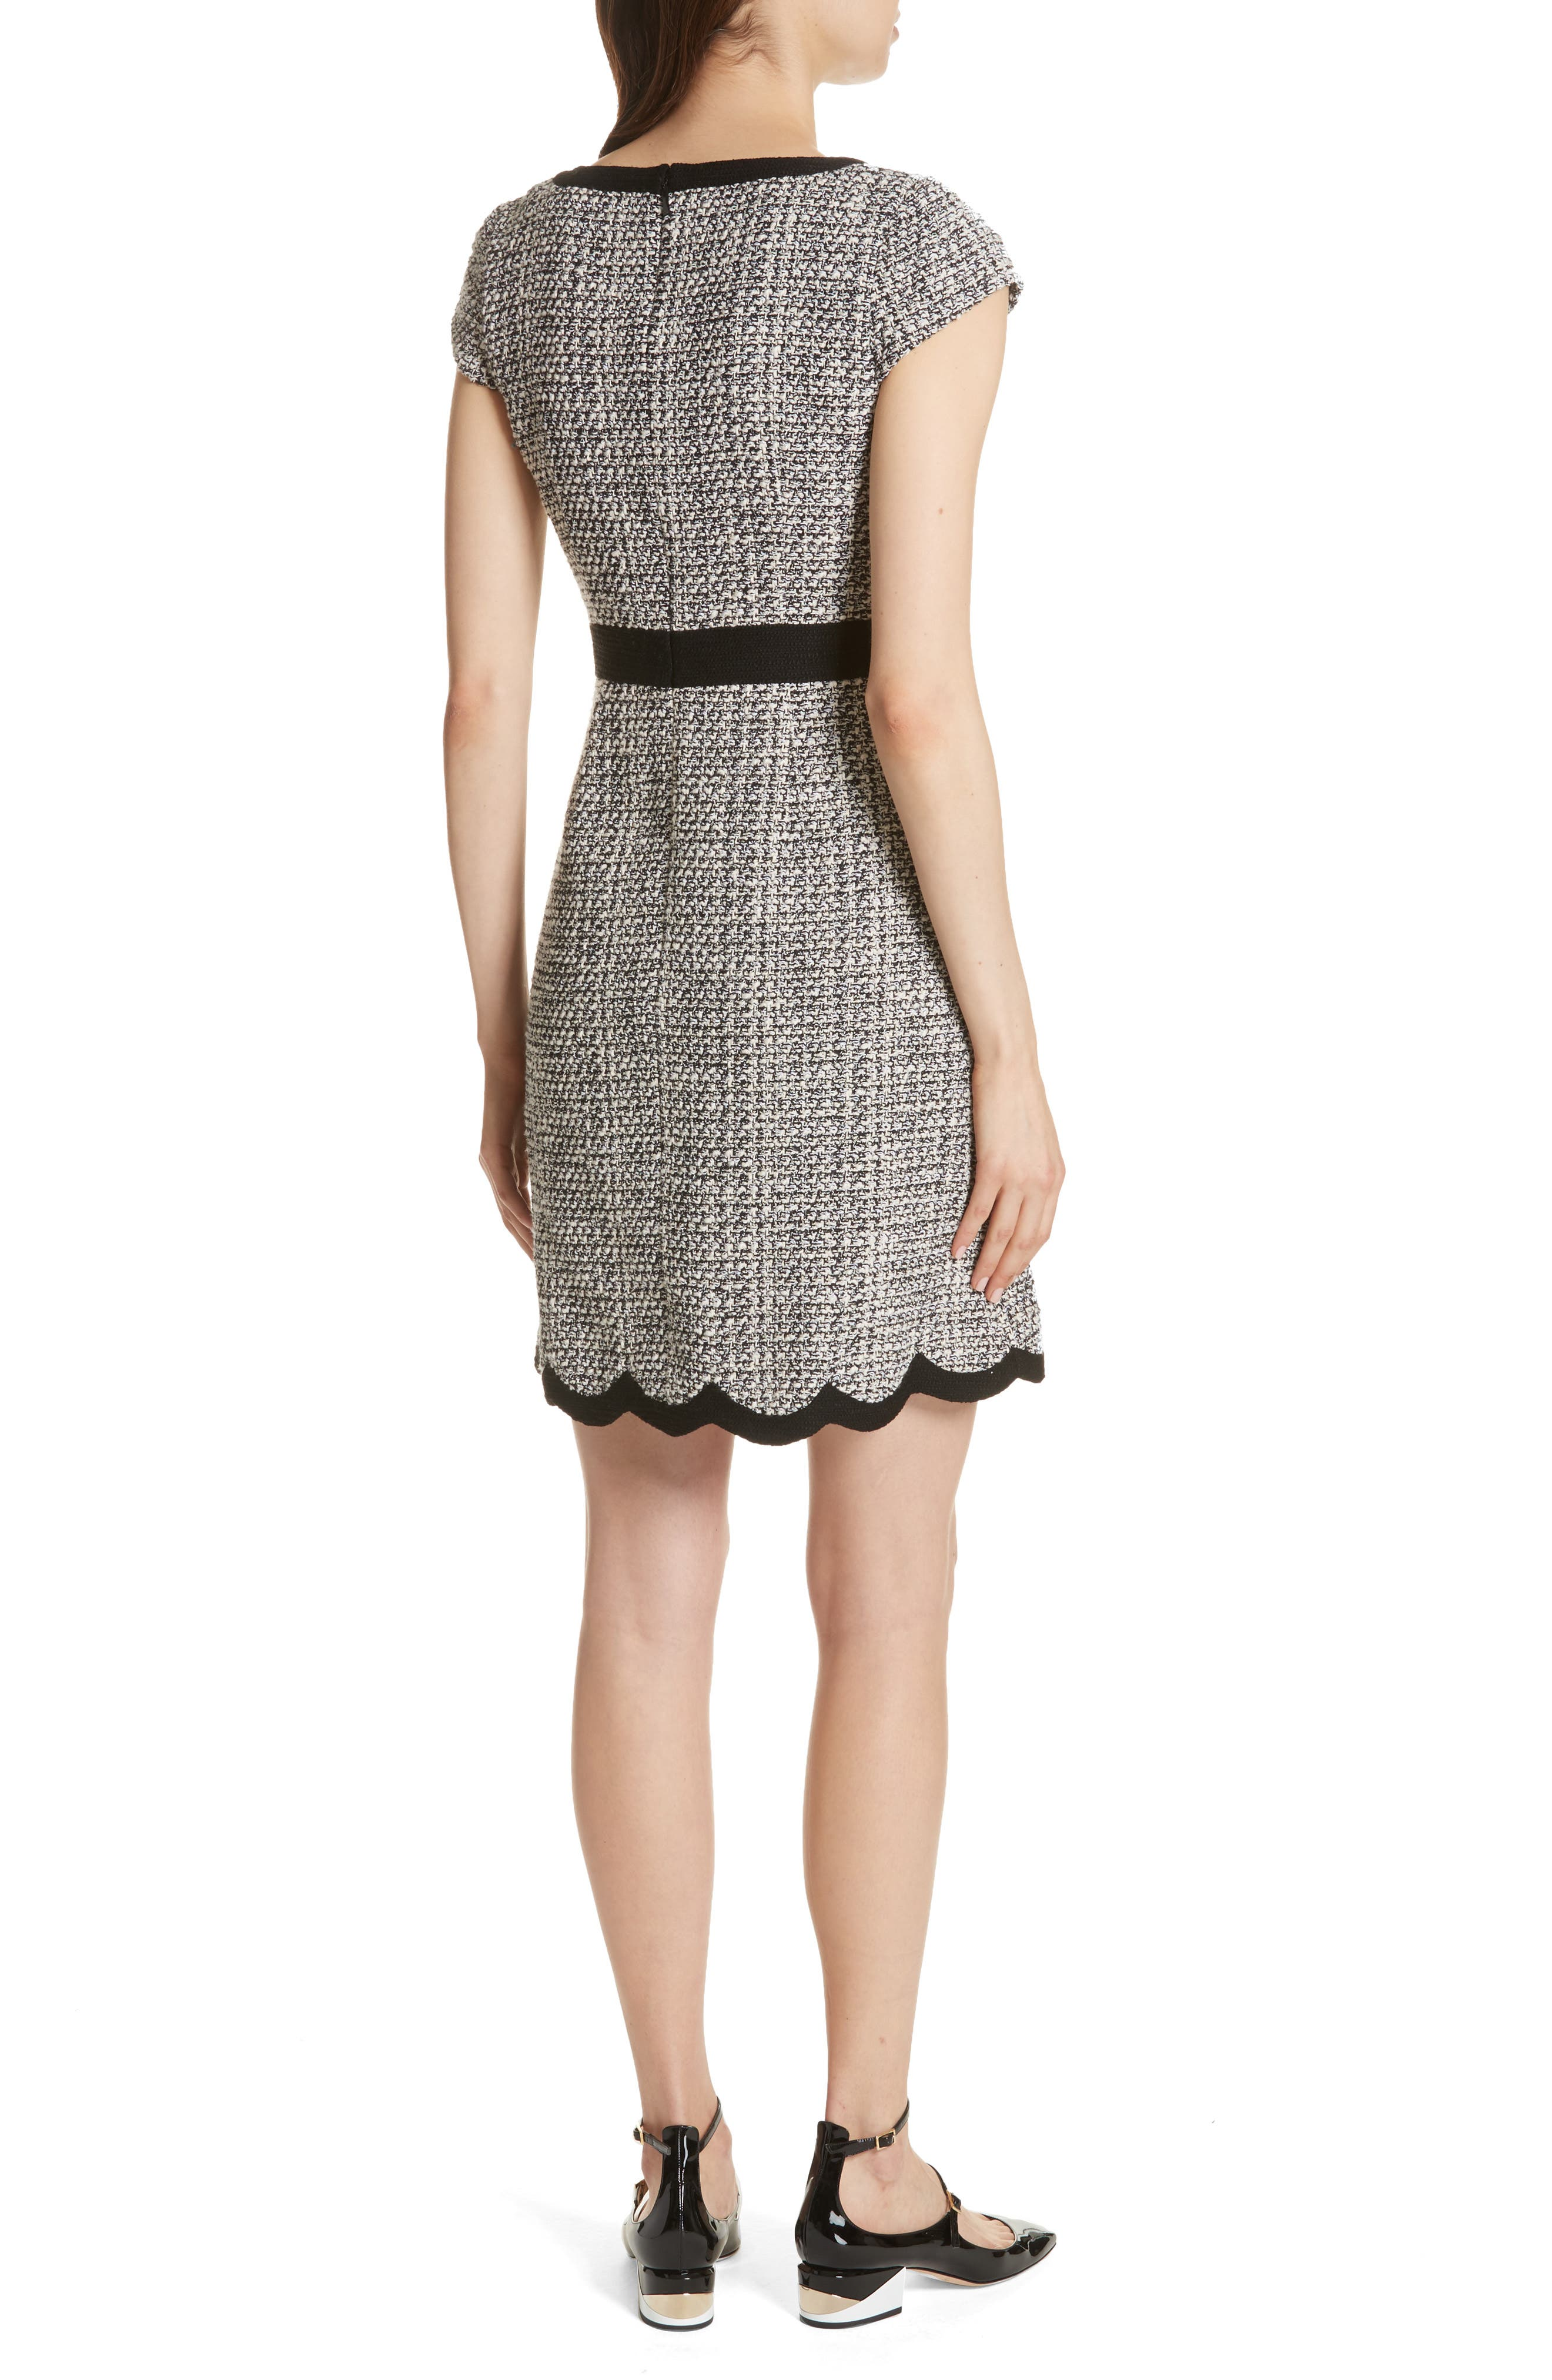 scallop tweed dress,                             Alternate thumbnail 2, color,                             Black/ Cream